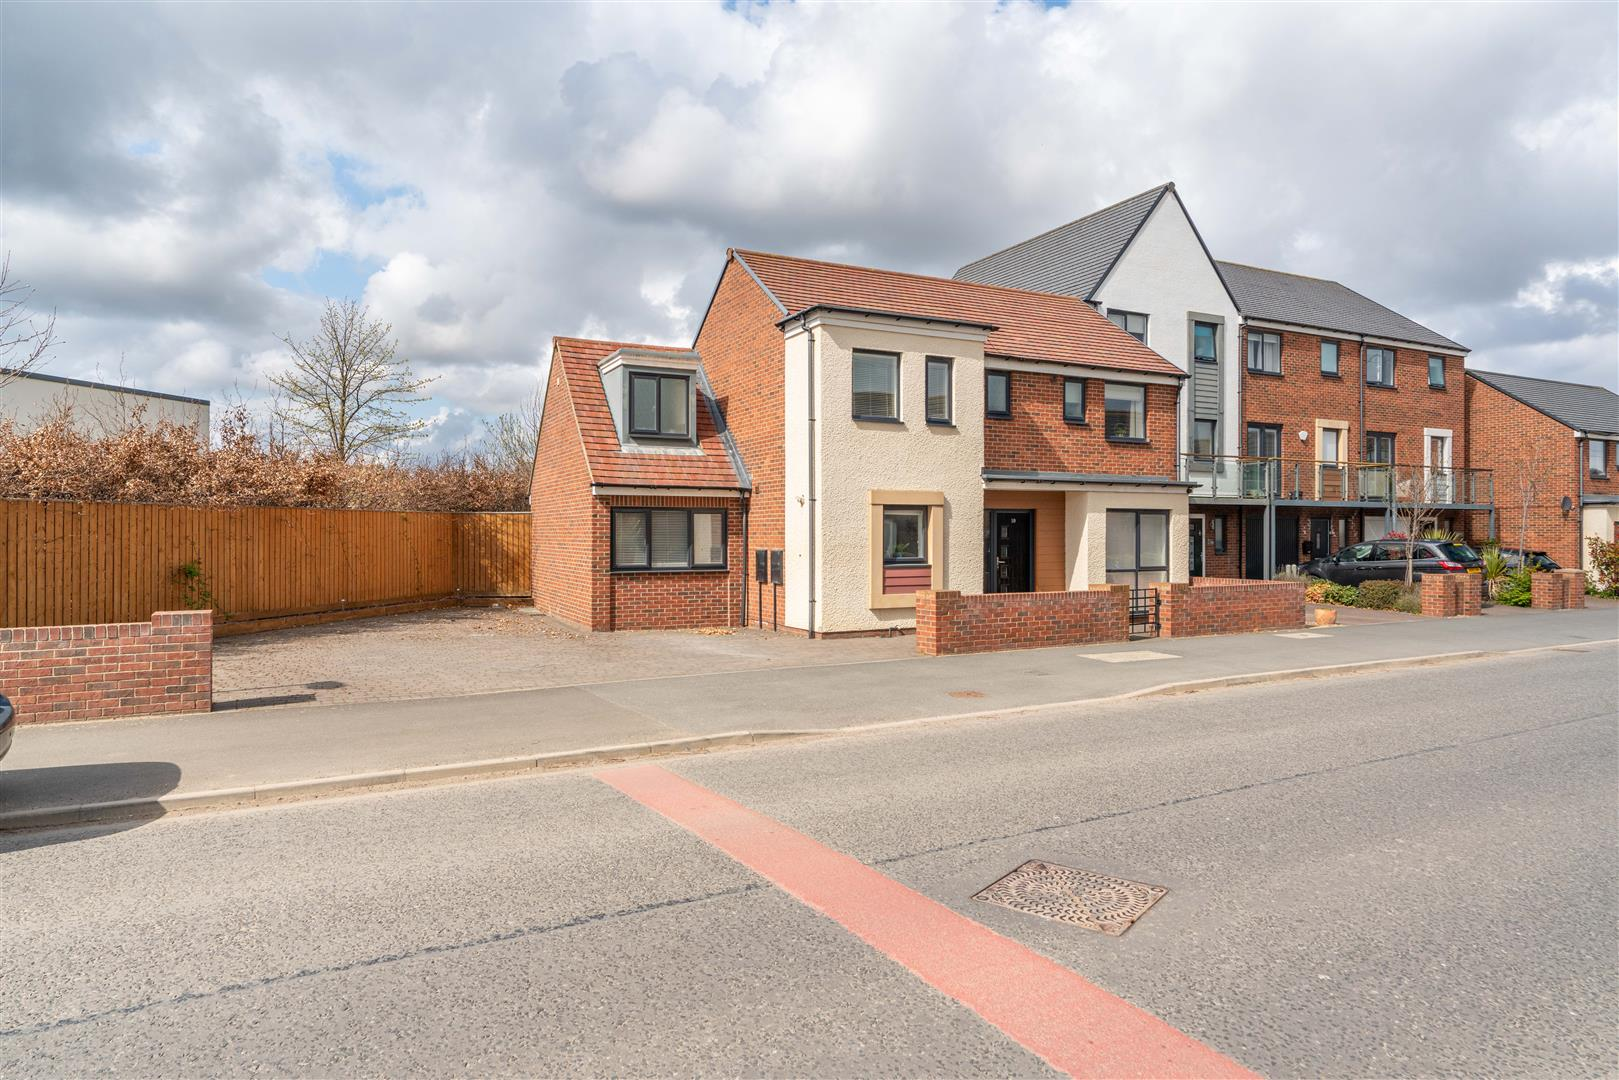 4 bed detached house for sale in Newcastle Upon Tyne, NE13 9BD, NE13